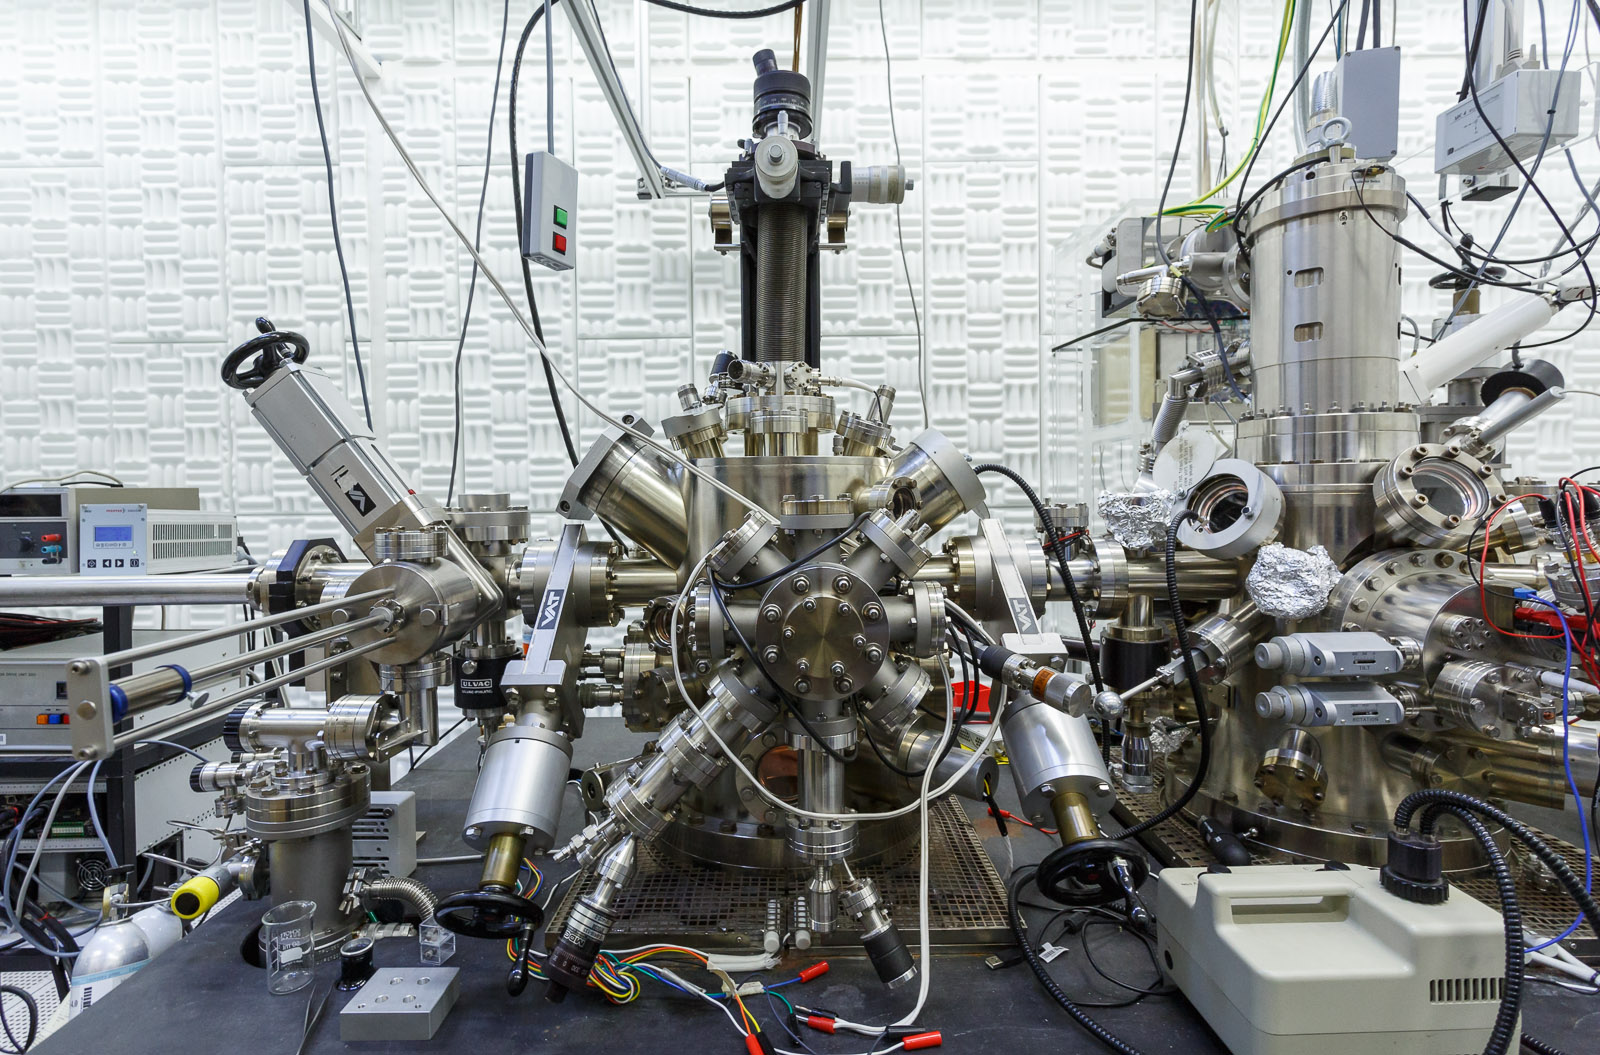 One super-precise instrument in IBM's noise-free rooms is this spin-polarized scanning electron microscope, which can be used to gauge the exact details about magnetic materials. Samples that researchers investigate are placed inside a chamber with a vacuum as hard as in space above Earth.